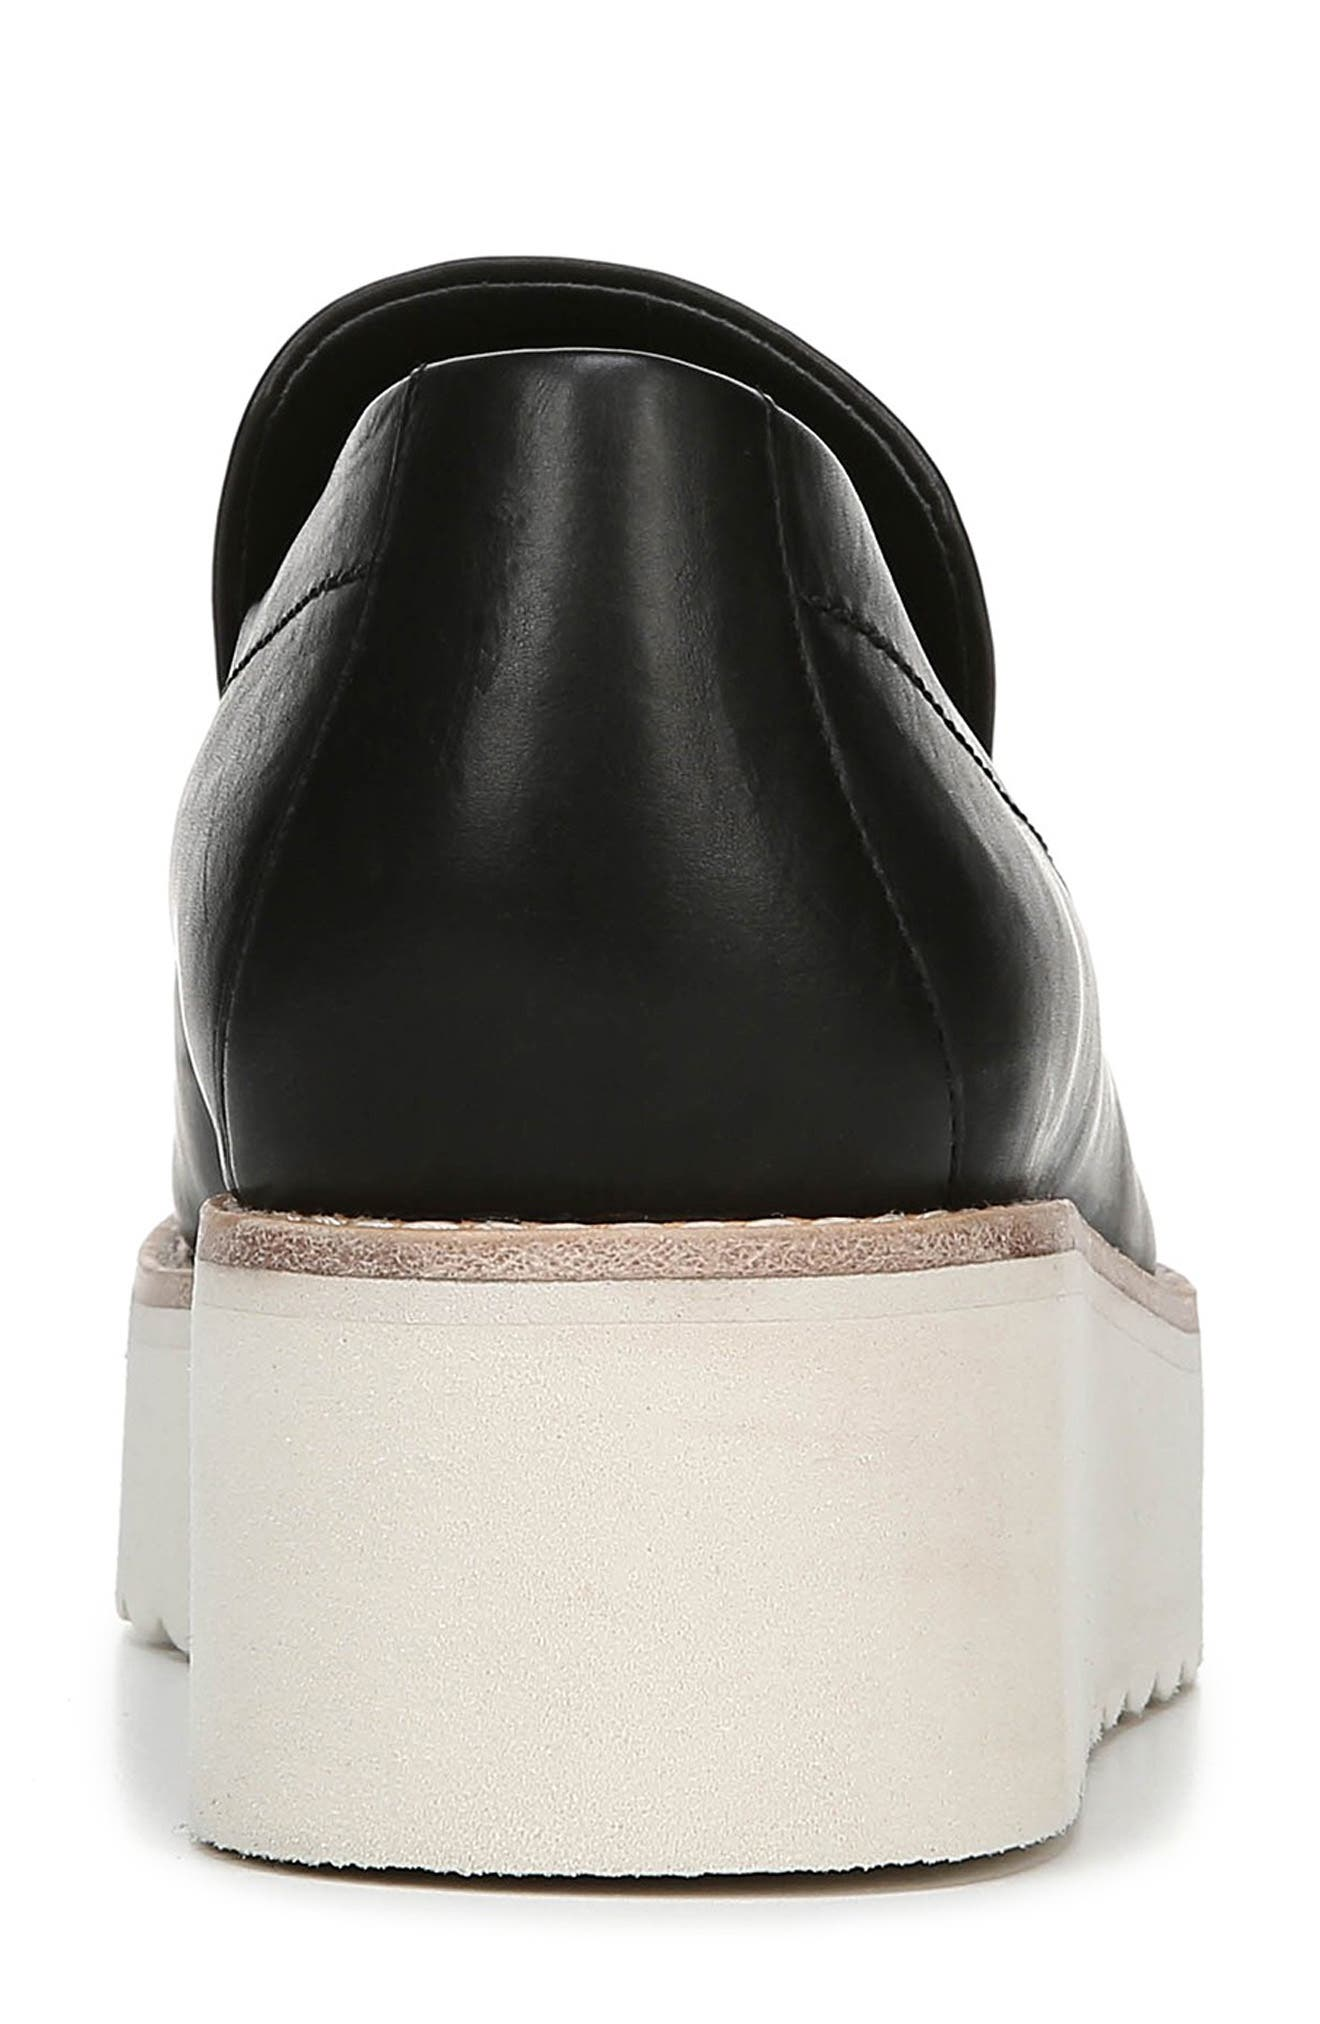 VINCE, Zeta Platform Loafer, Alternate thumbnail 7, color, BLACK FOULARD LEATHER